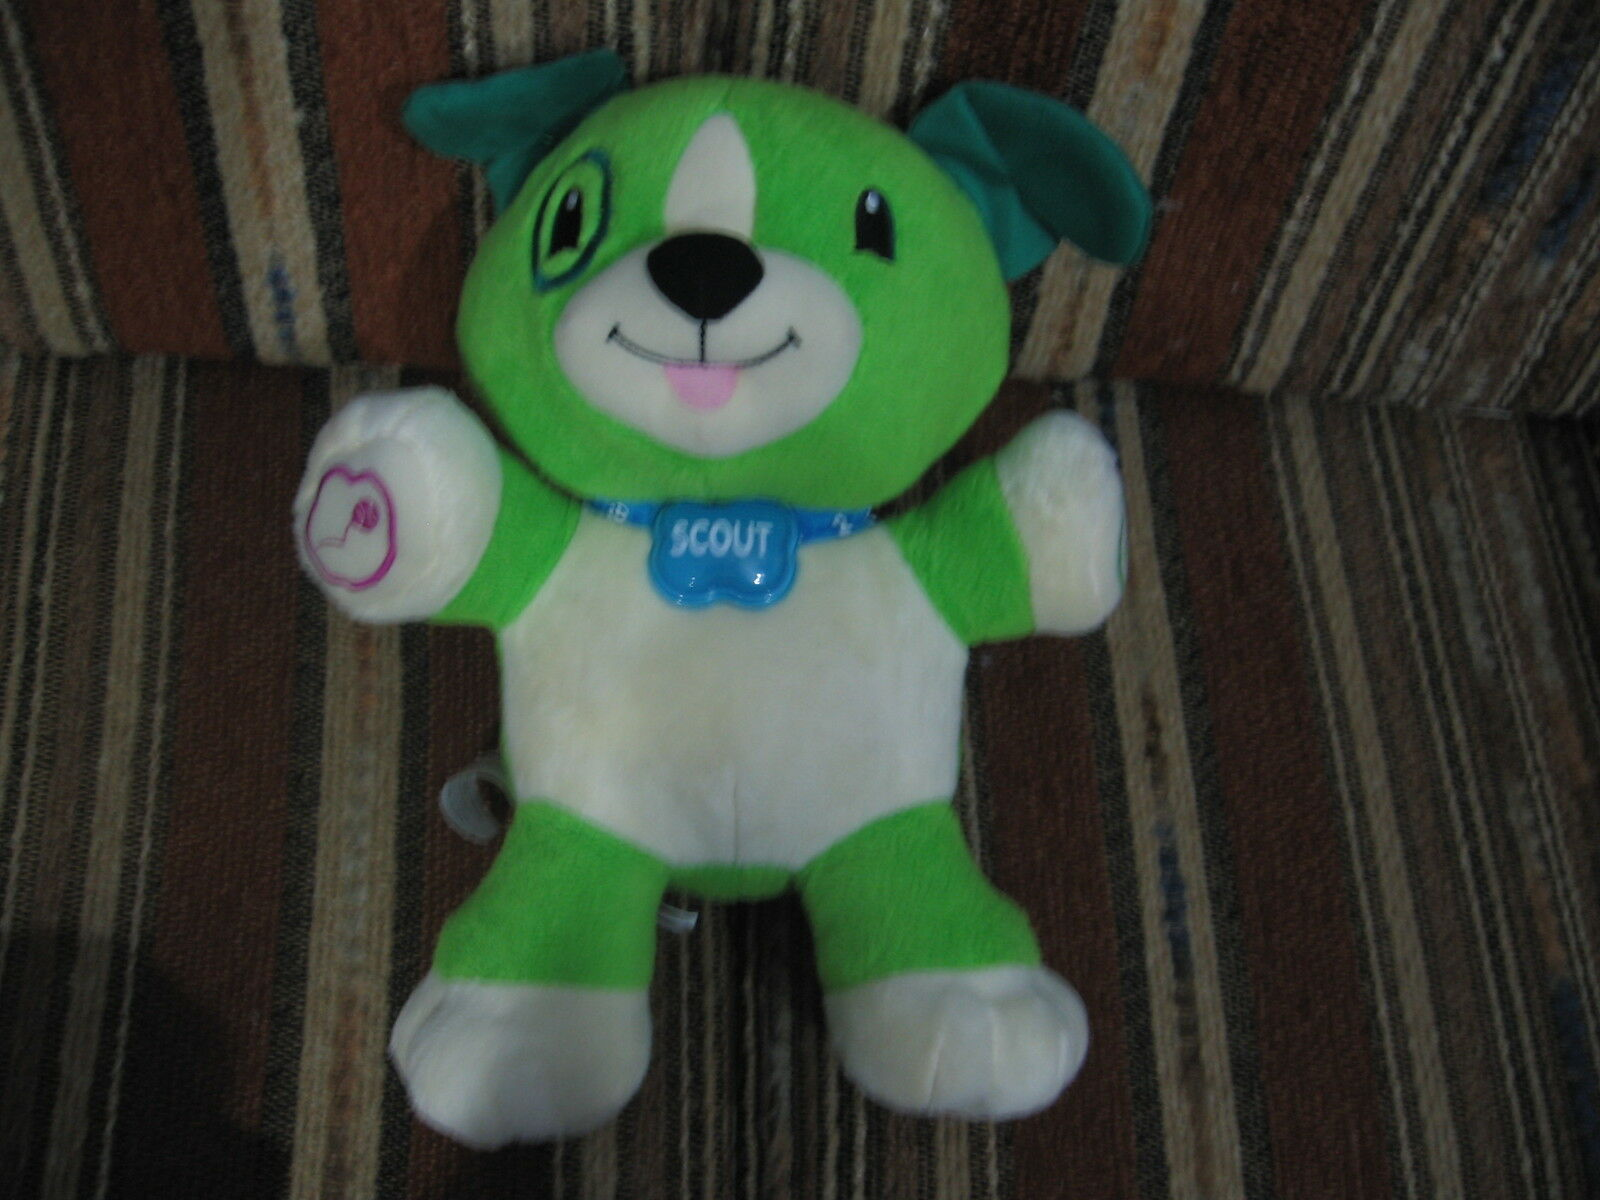 My Pal Scout, Scout, Scout, Leap Frog Baby, works great e4b983